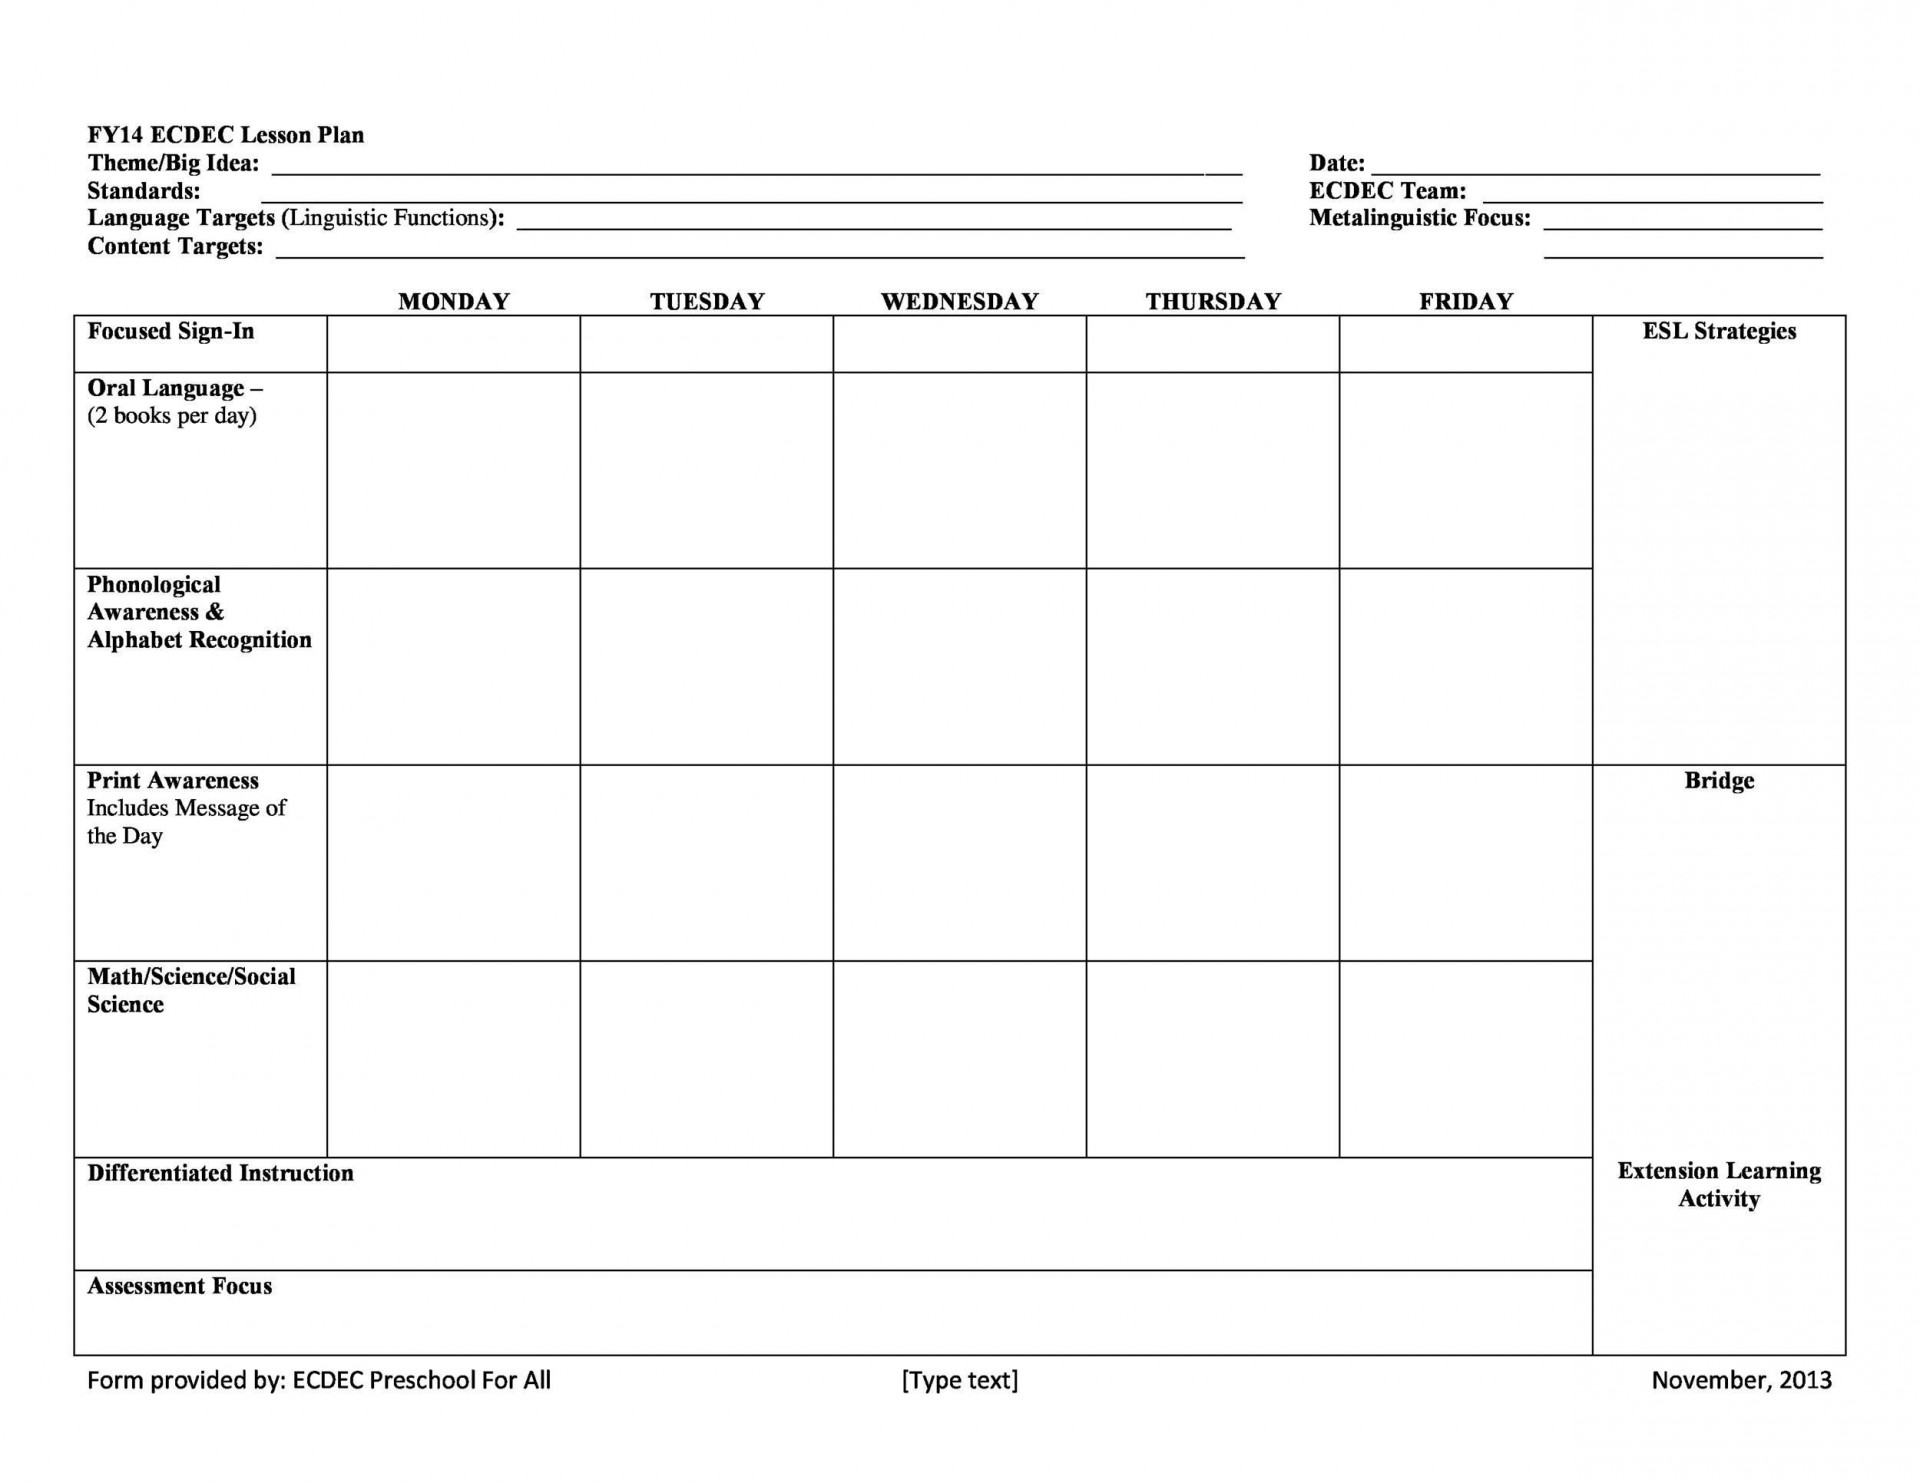 008 Impressive Free Editable Weekly Lesson Plan Template Pdf Example  Blank1920